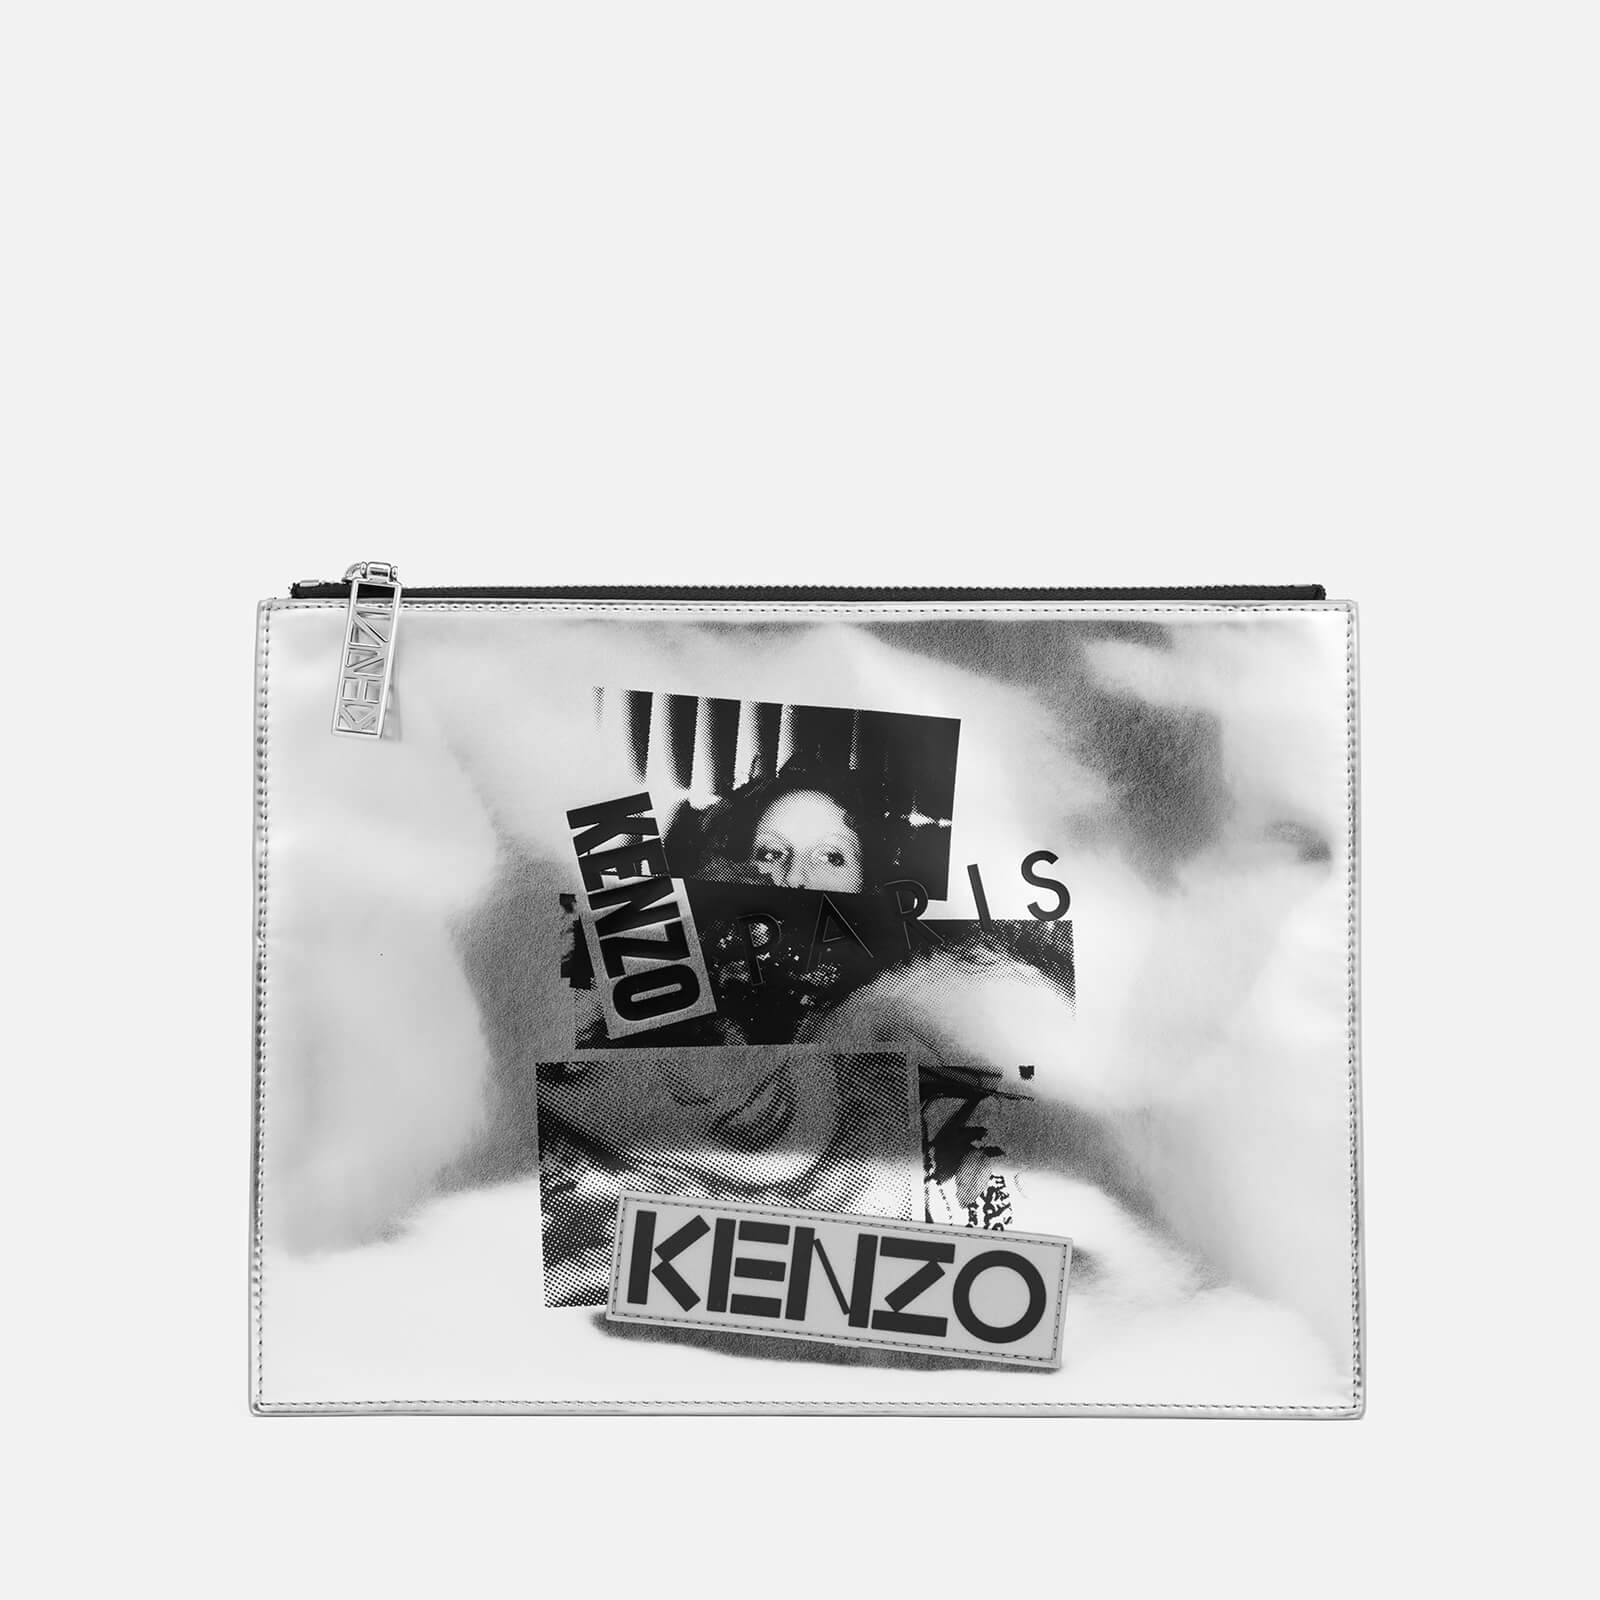 6685e447d2aae4 KENZO Women's 'Antonio Lopez' Clutch Bag - Silver - Free UK Delivery over  £50